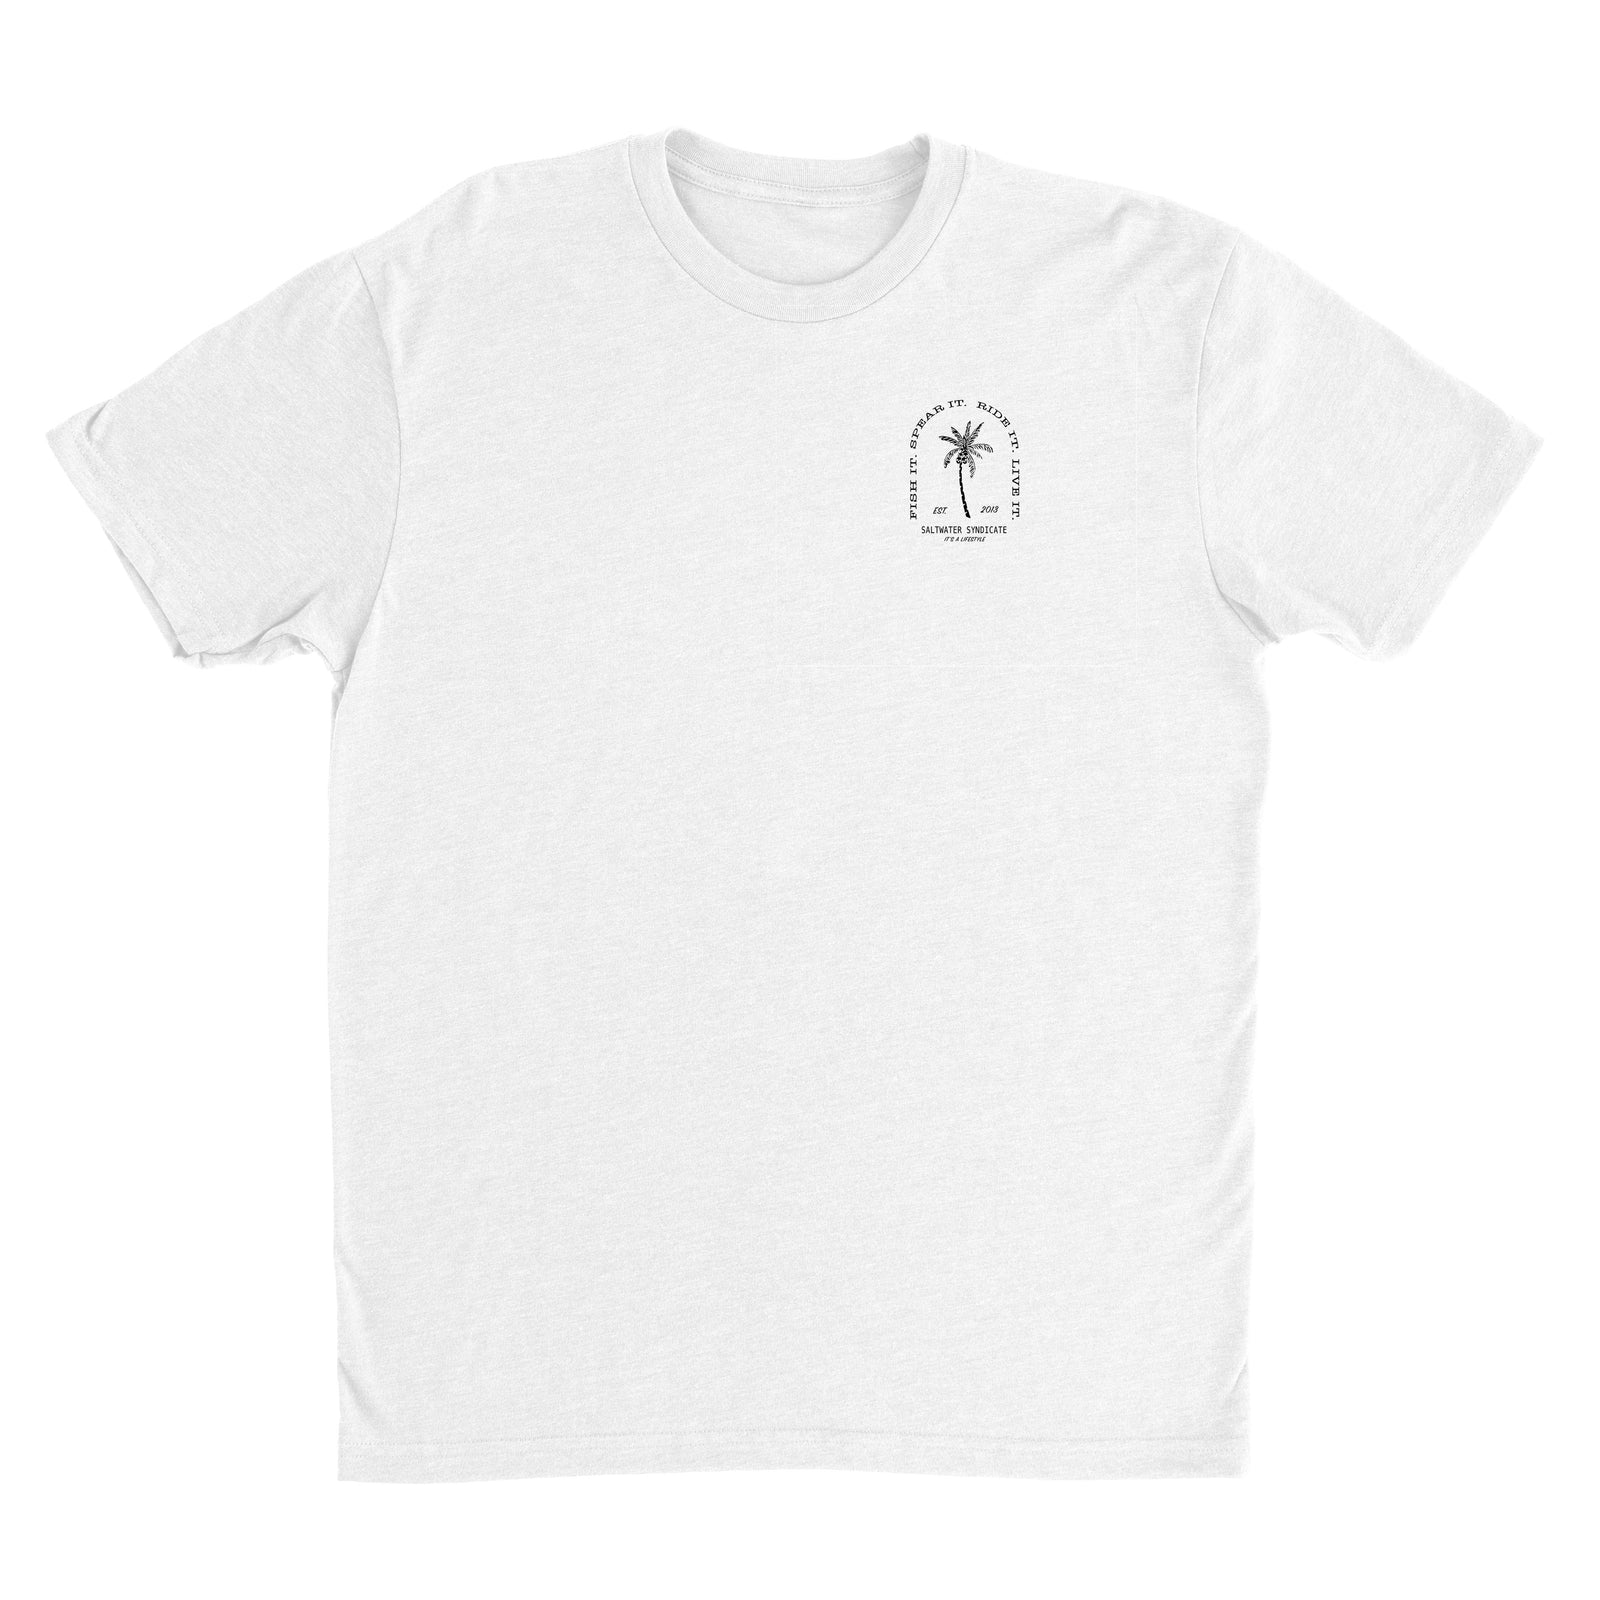 Skoconut Tee - White